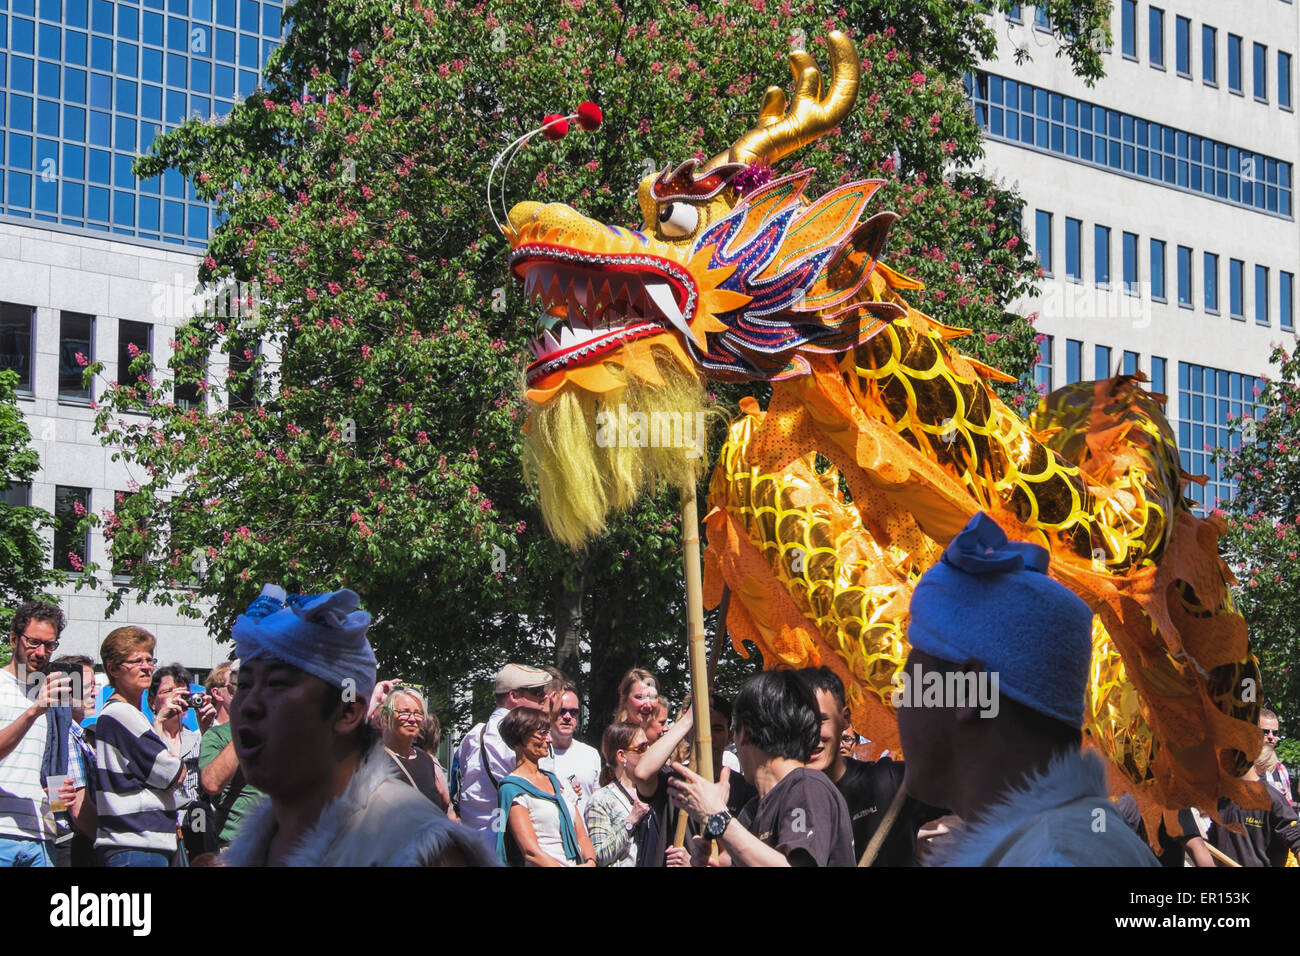 Kreuzberg, Berlin, Germany, 24th May 2015. Crowds watch the Chinese dragon as Berlin celebrates its cultural diversity - Stock Image